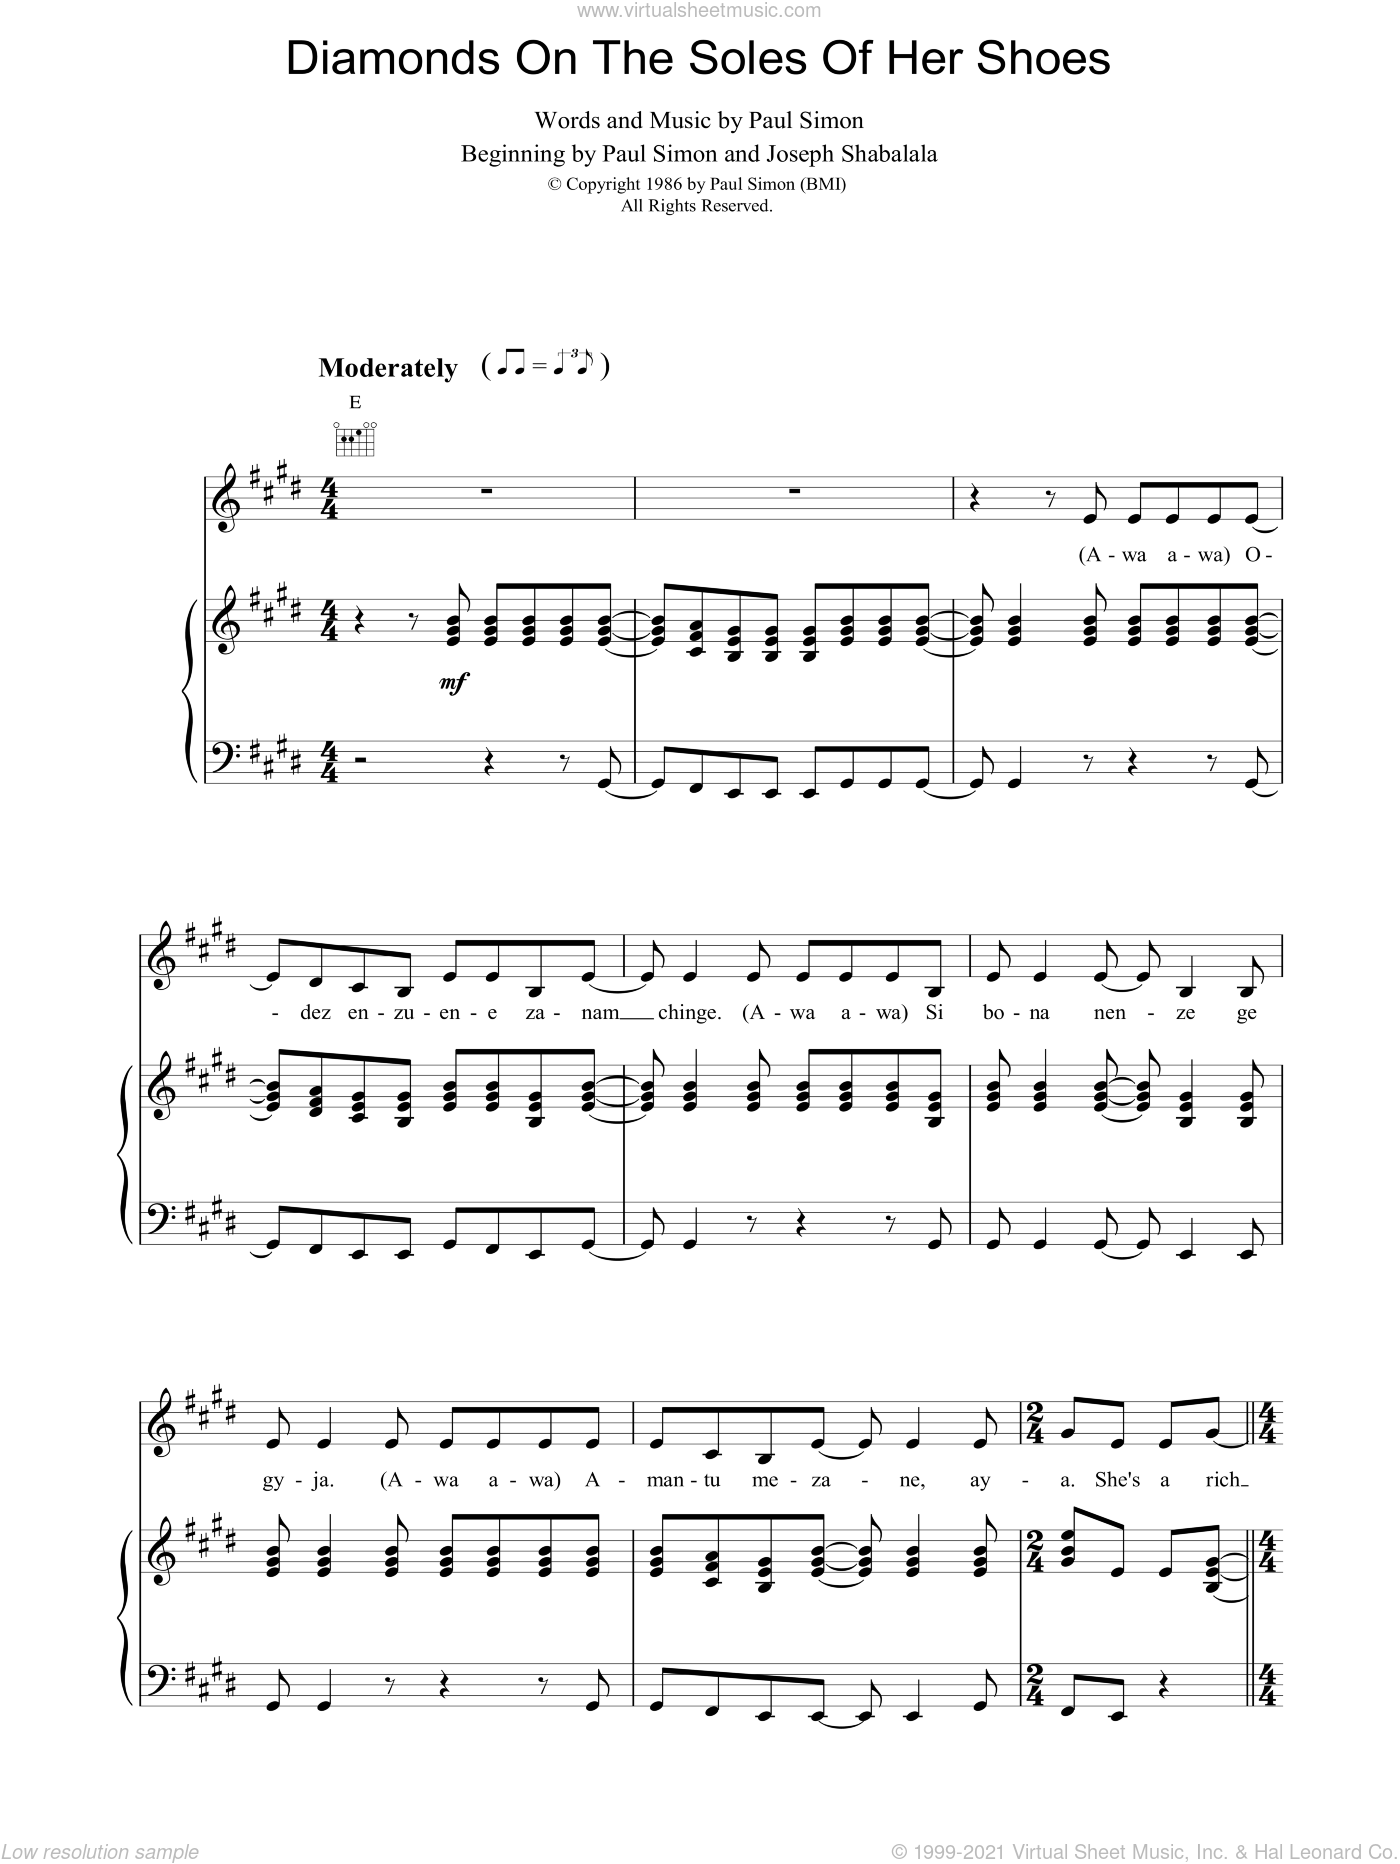 Diamonds On The Soles Of Her Shoes sheet music for voice, piano or guitar by Paul Simon and Joseph Shabalala, intermediate voice, piano or guitar. Score Image Preview.